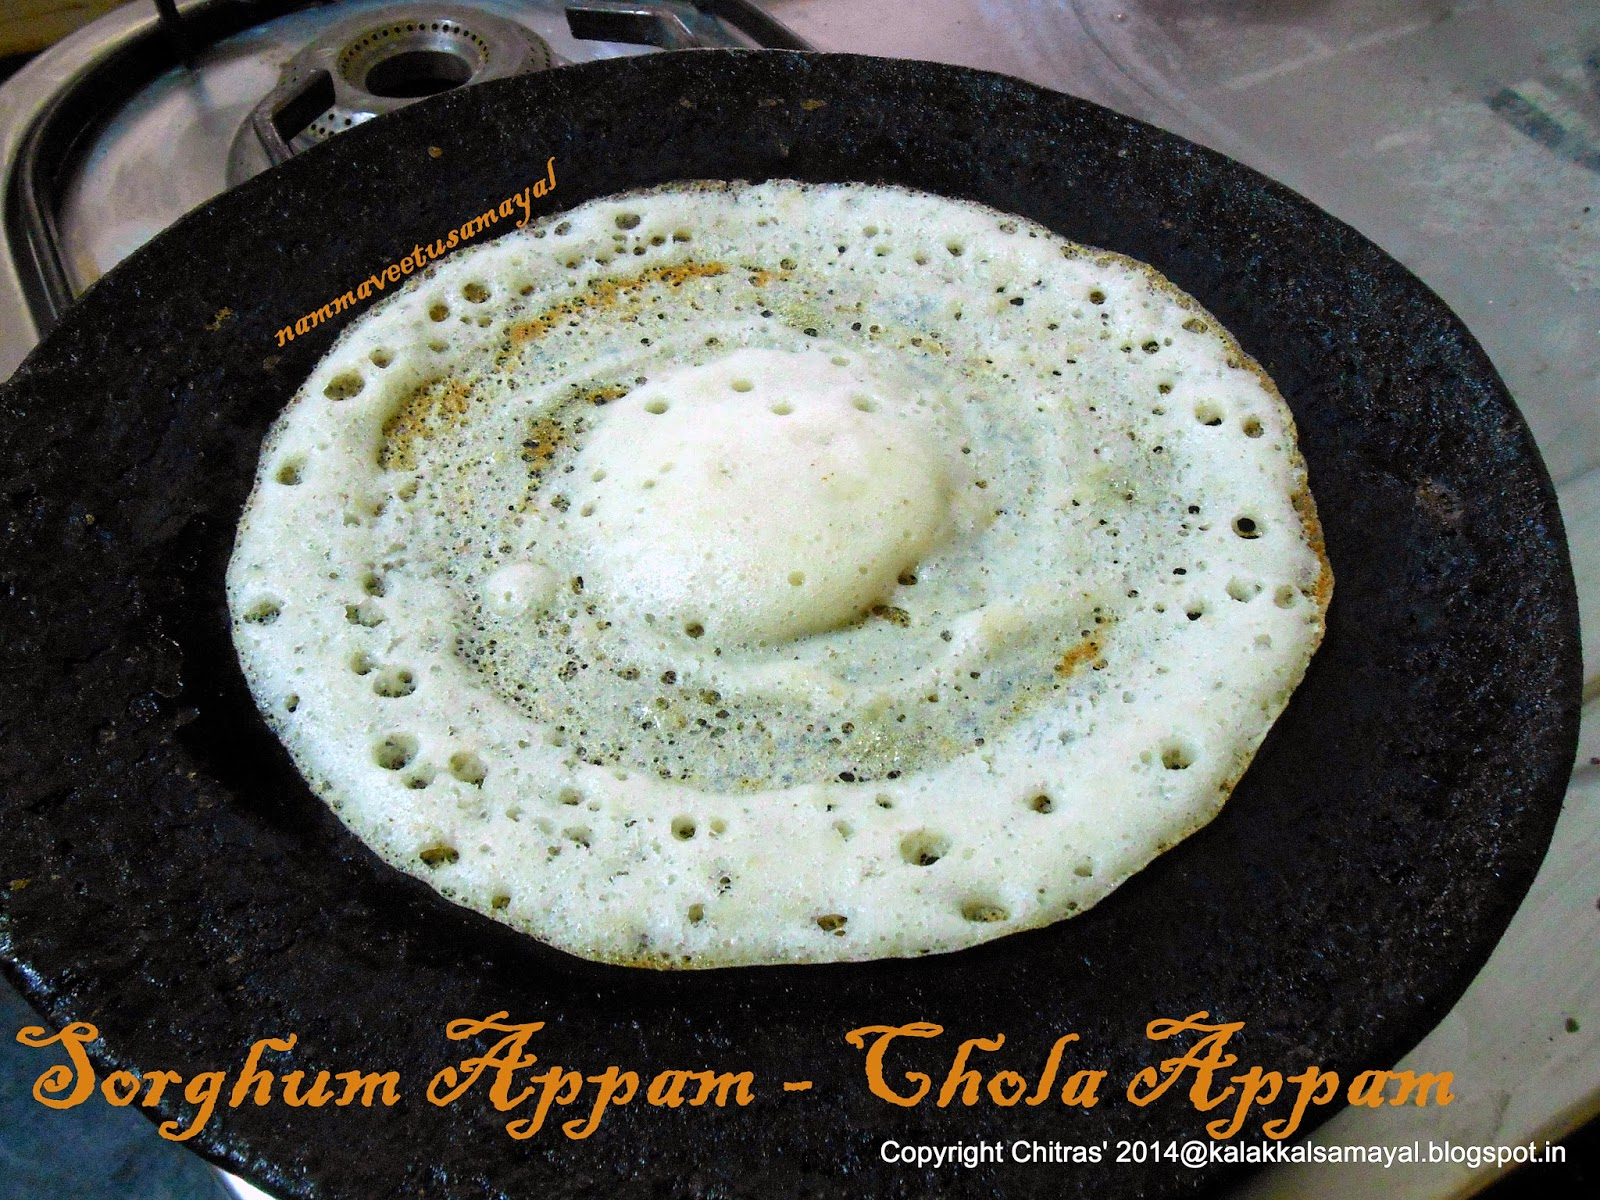 Cholam appam [ sorghum appam ]